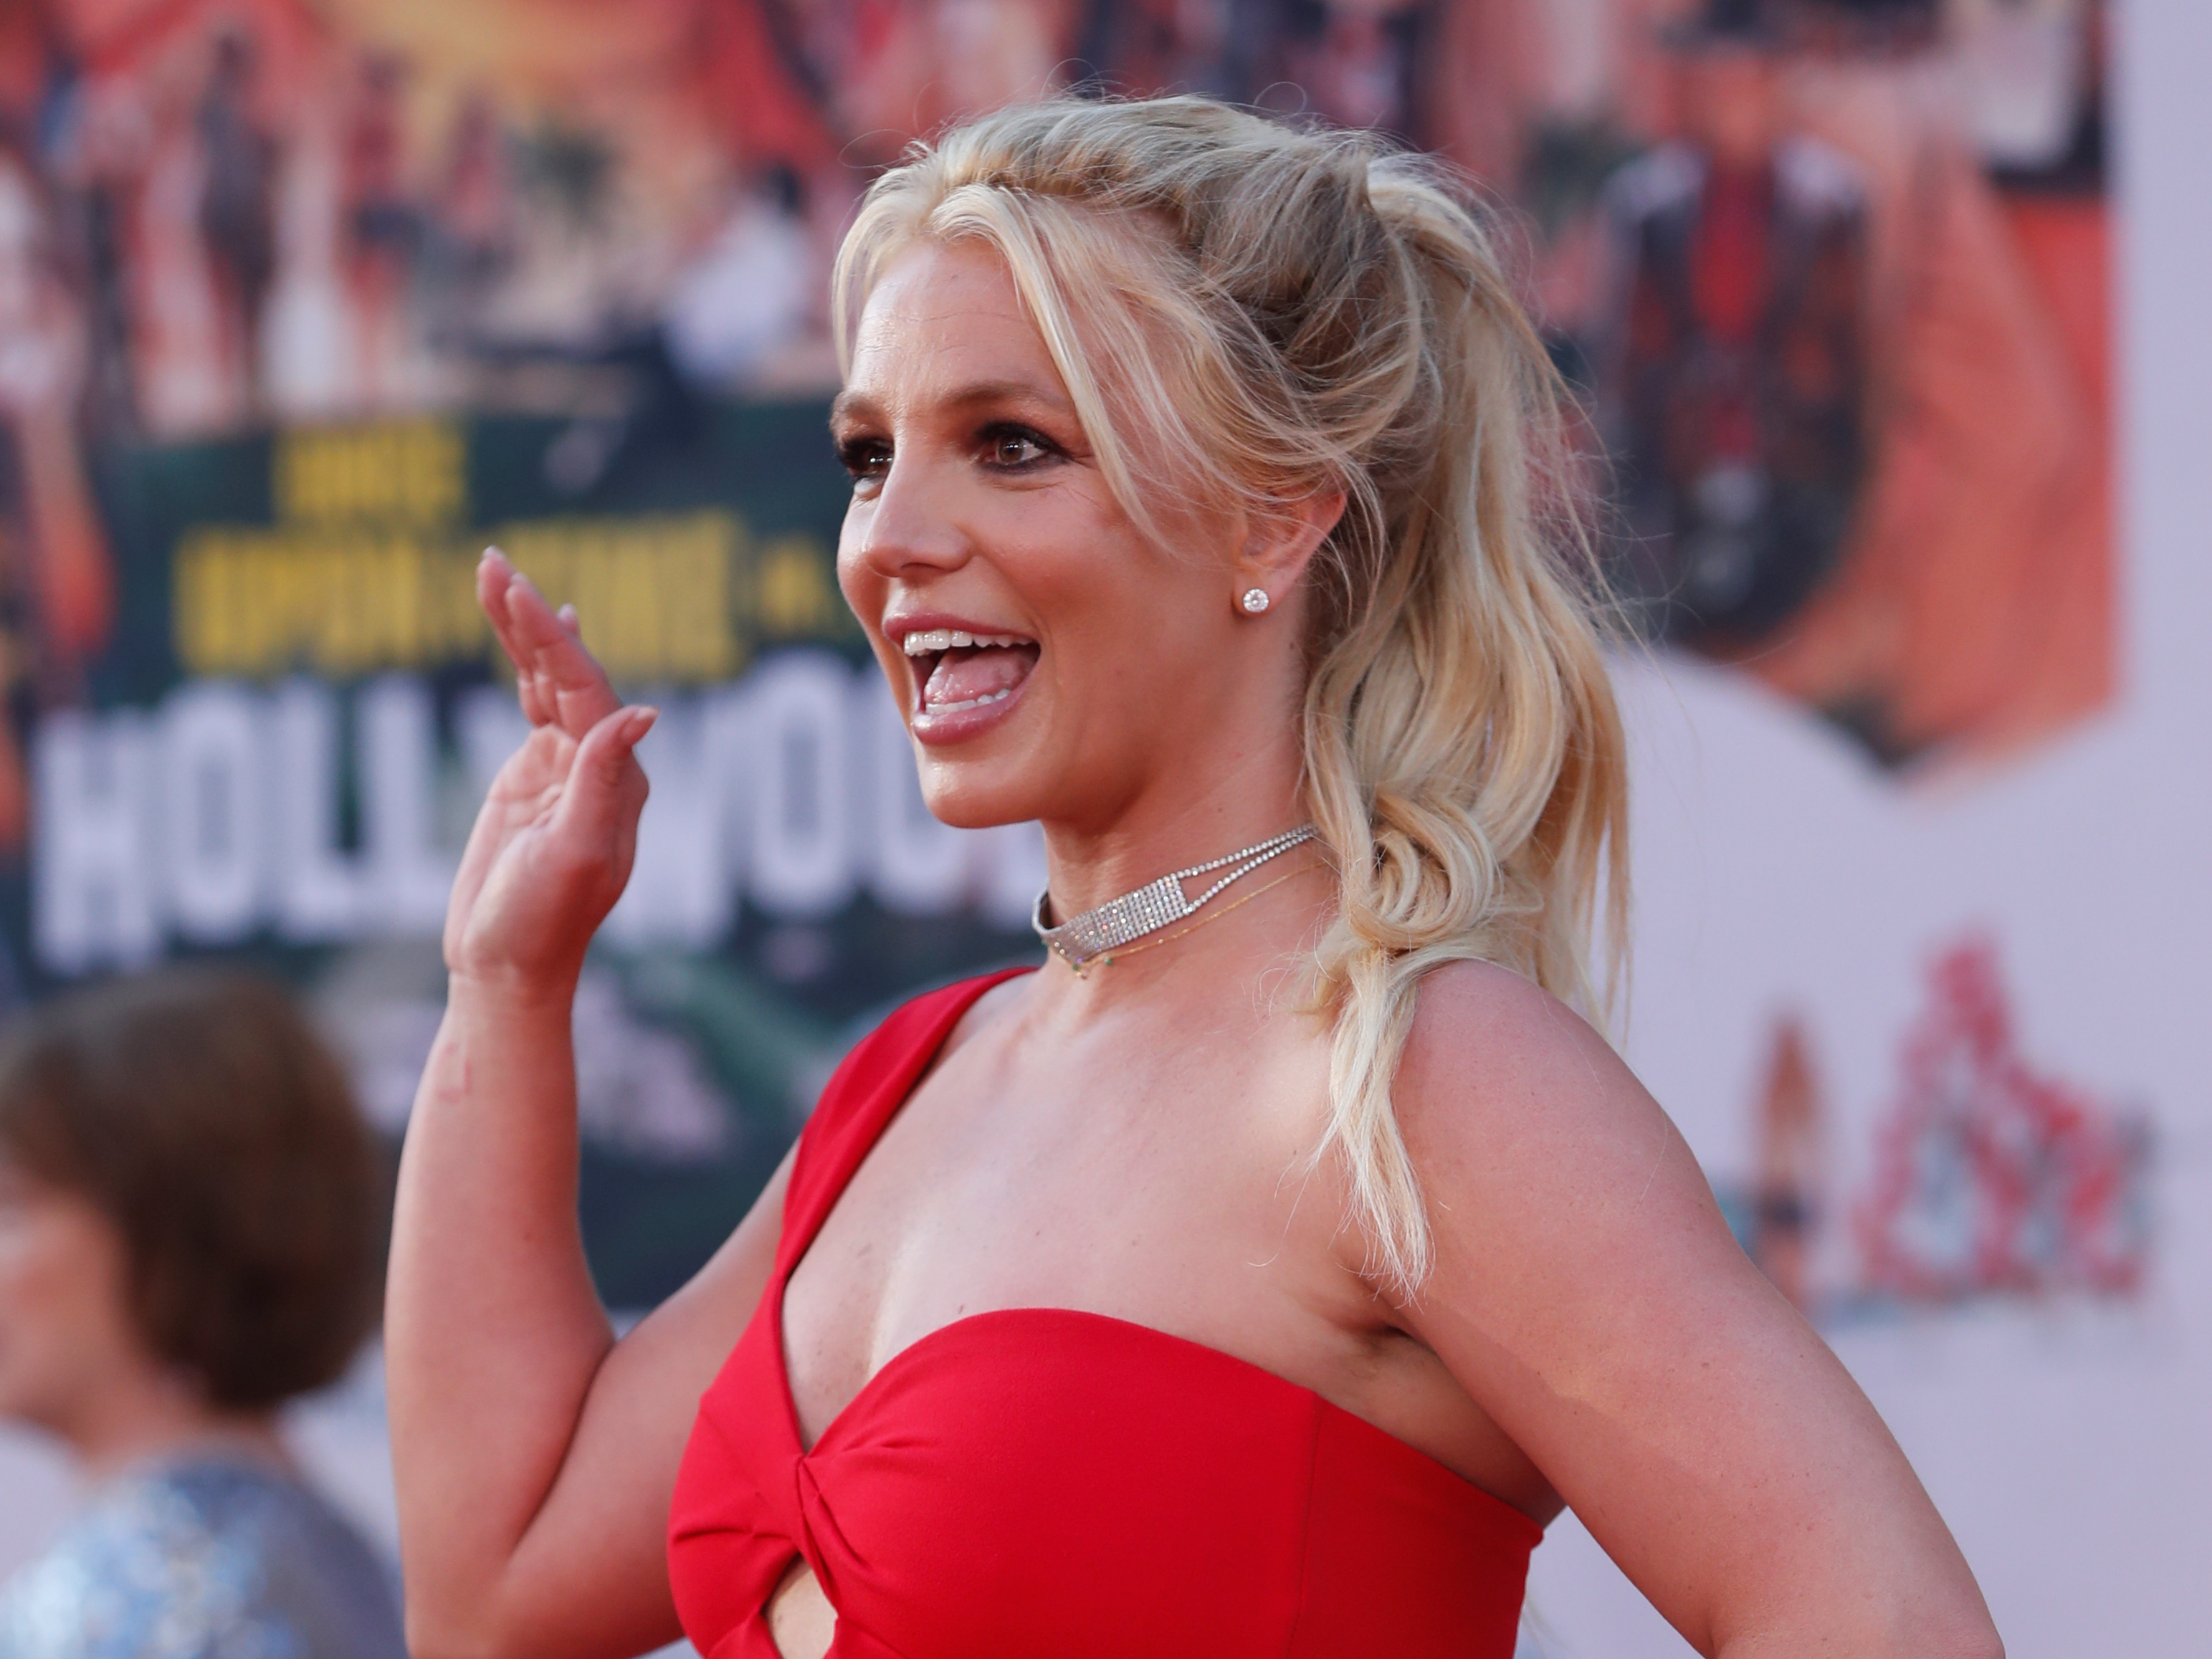 Britney Spears hasn't legally controlled her $59 million fortune in 12 years. Here's how the pop icon makes and spends her money, from Target shopping trips to California mansions.